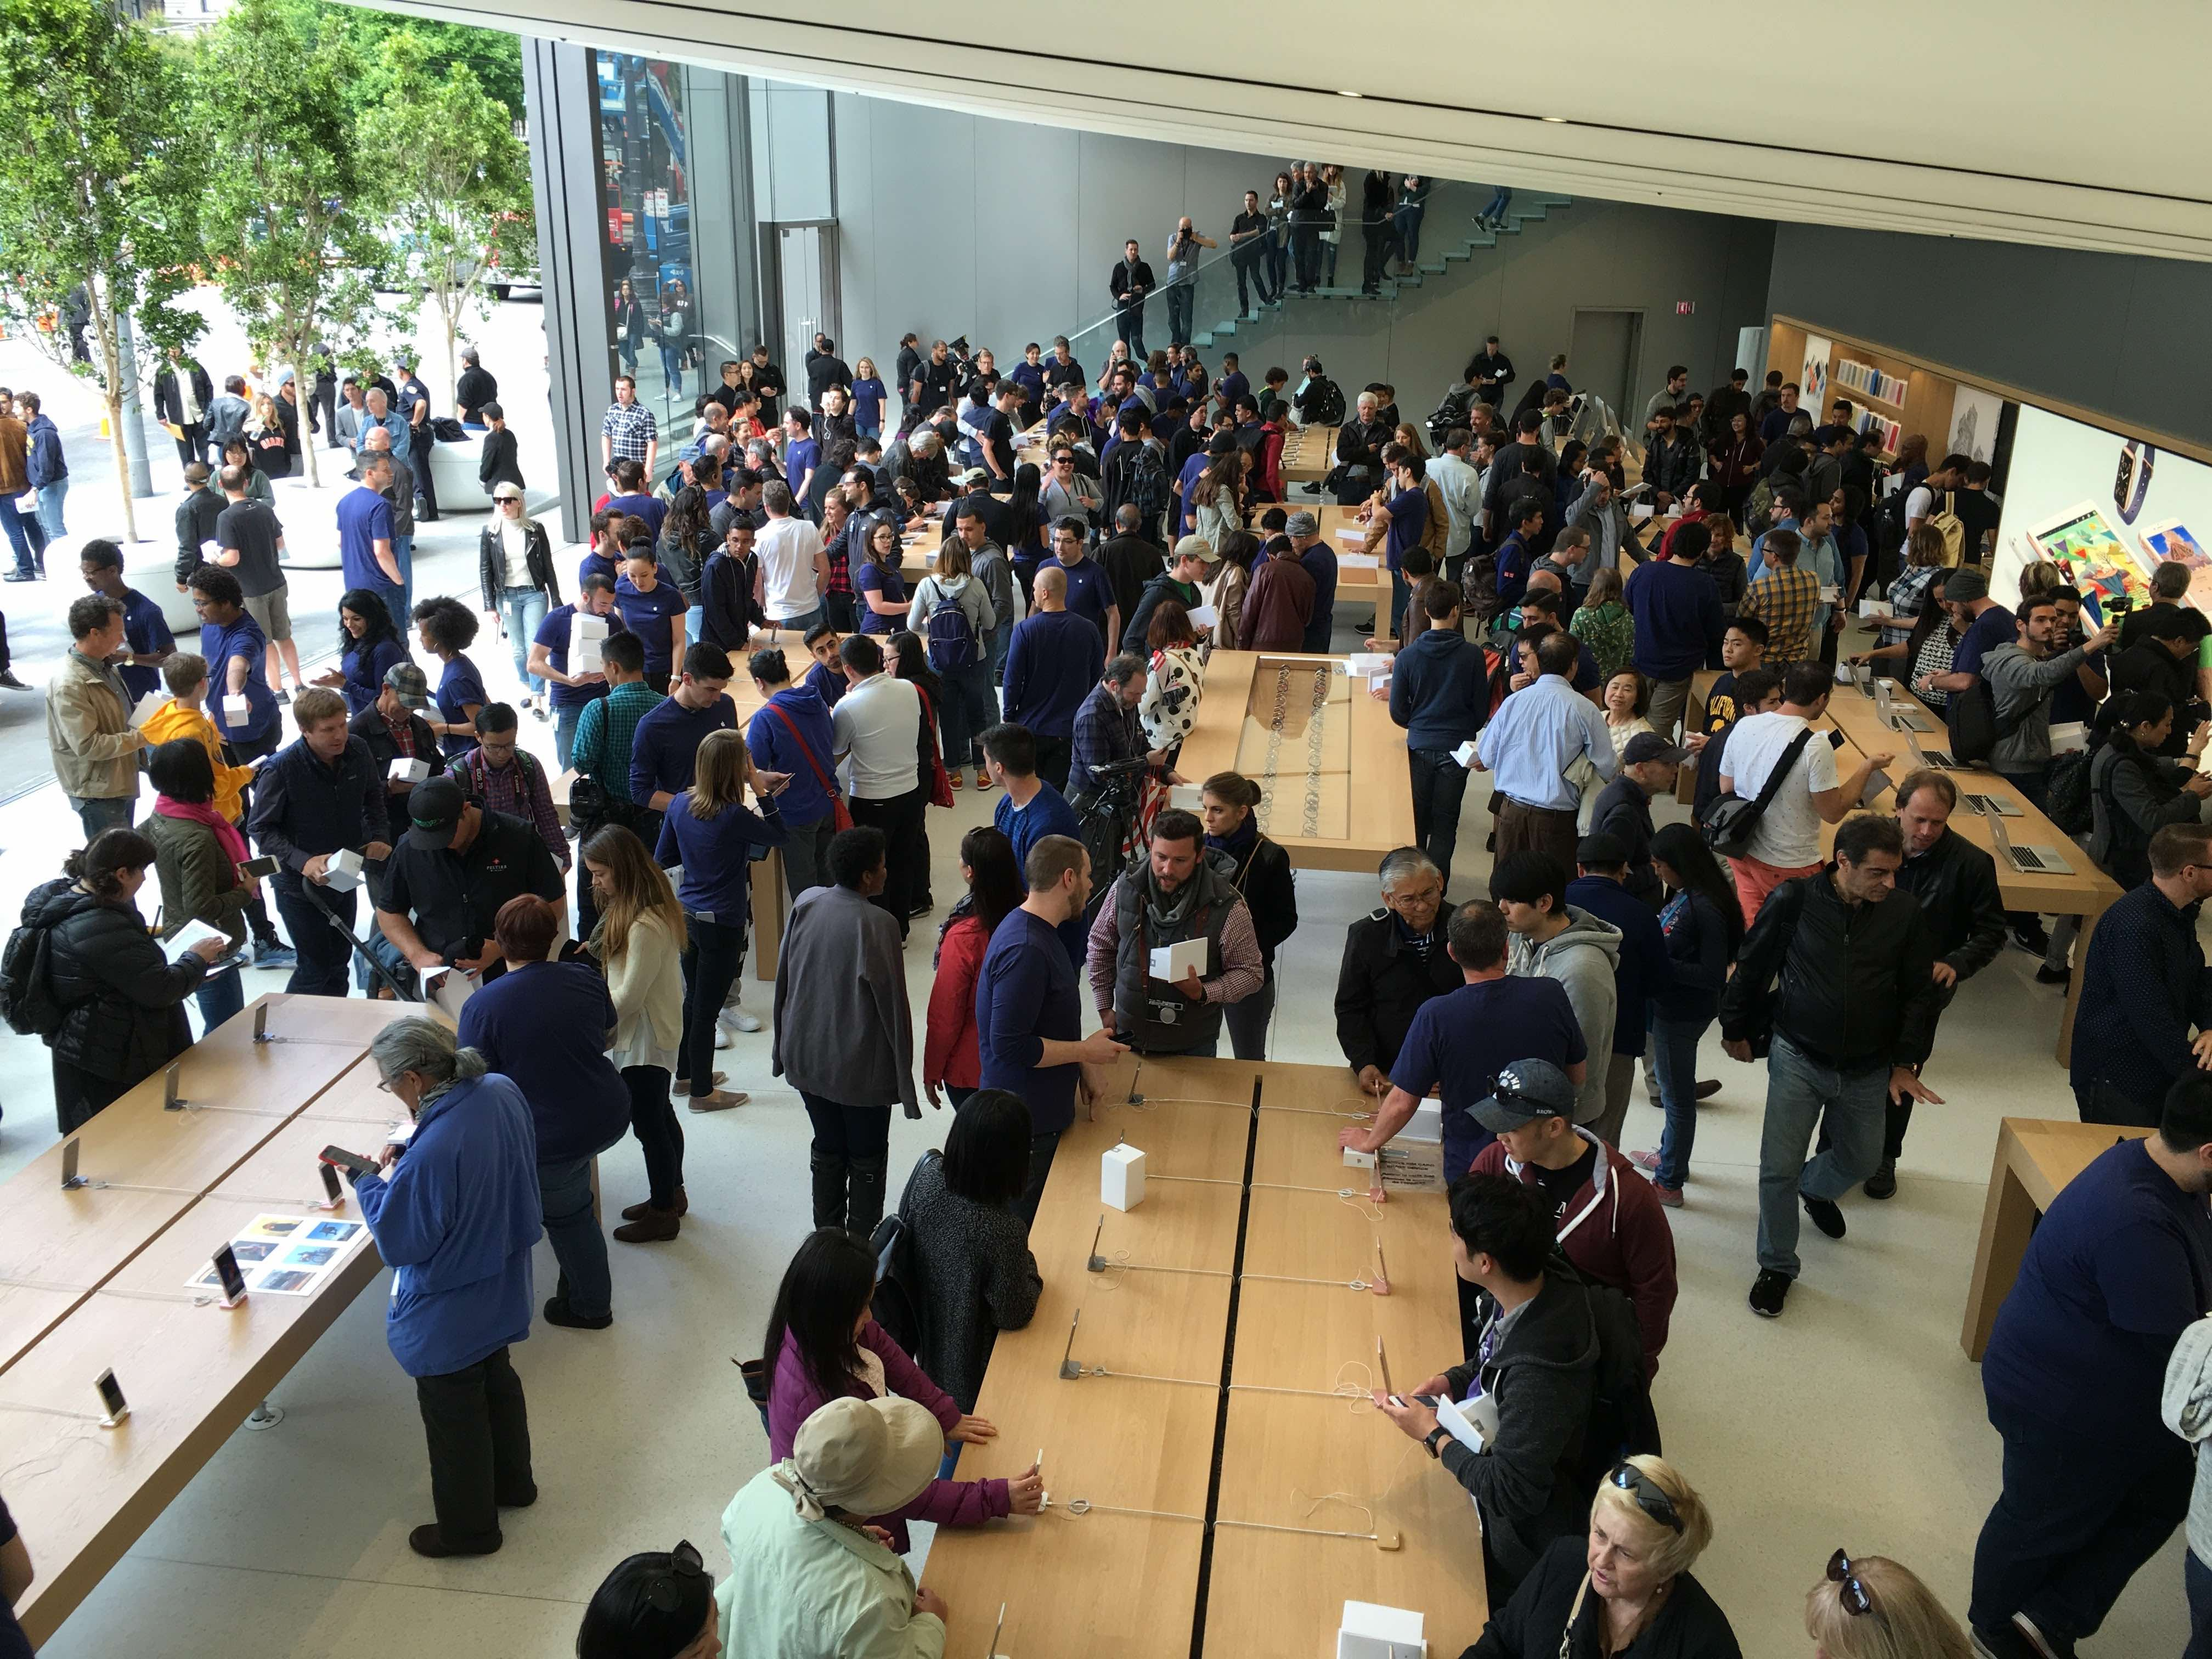 Apple Union Square now has more than 150 employees working at the store, Apple says.